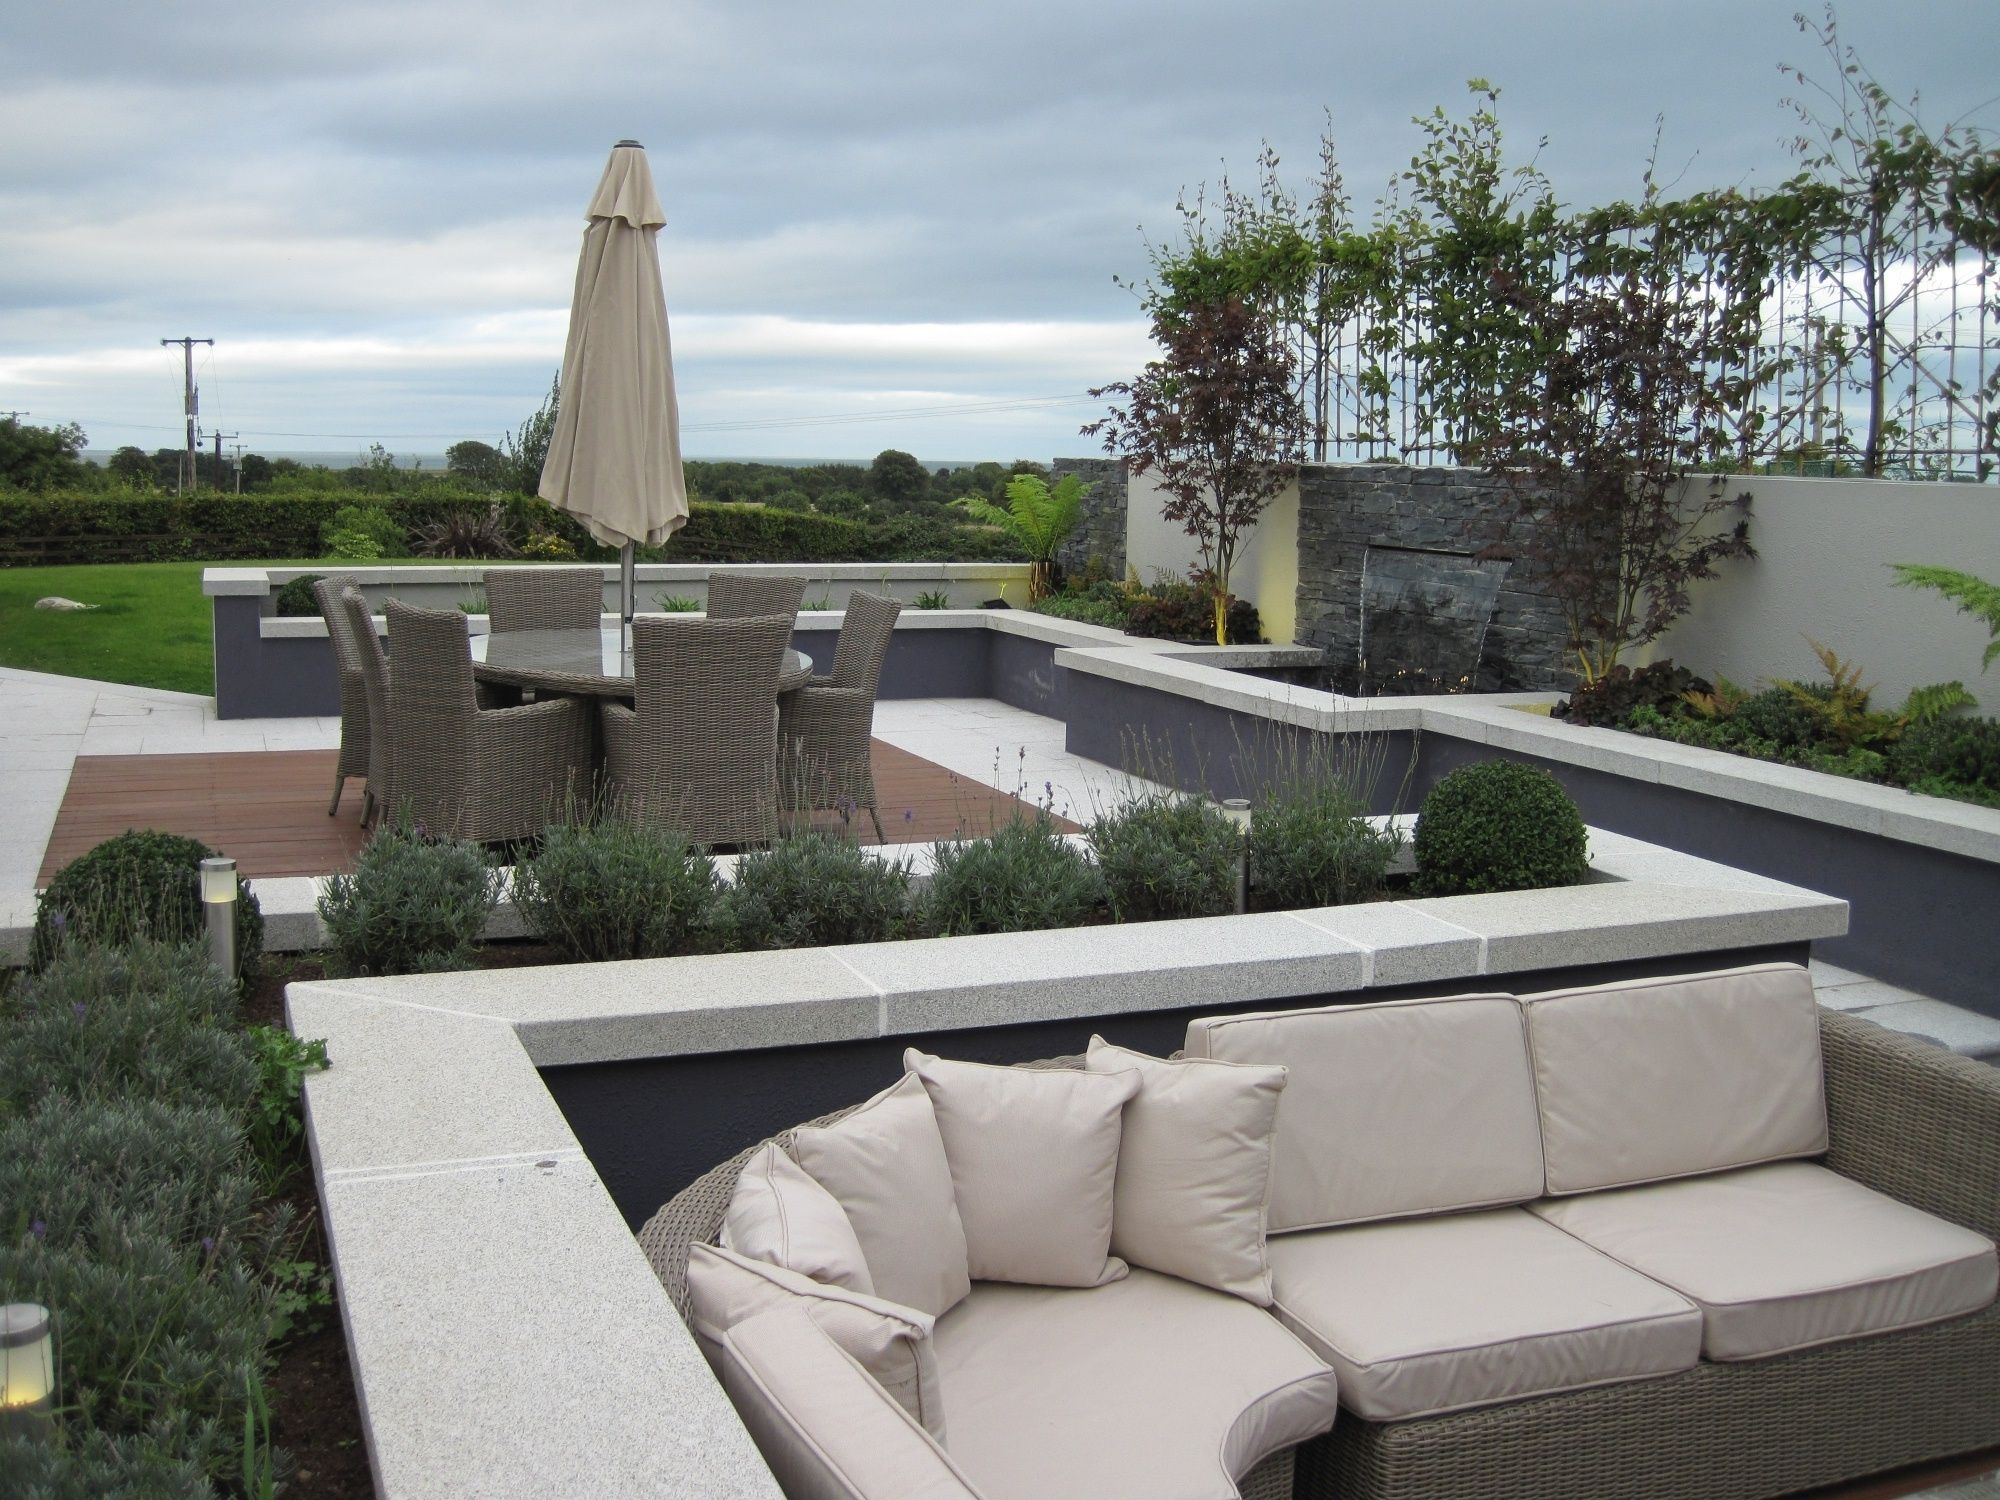 12 Insanely Beautiful Garden Patio Ideas Ireland Bw04a4 With